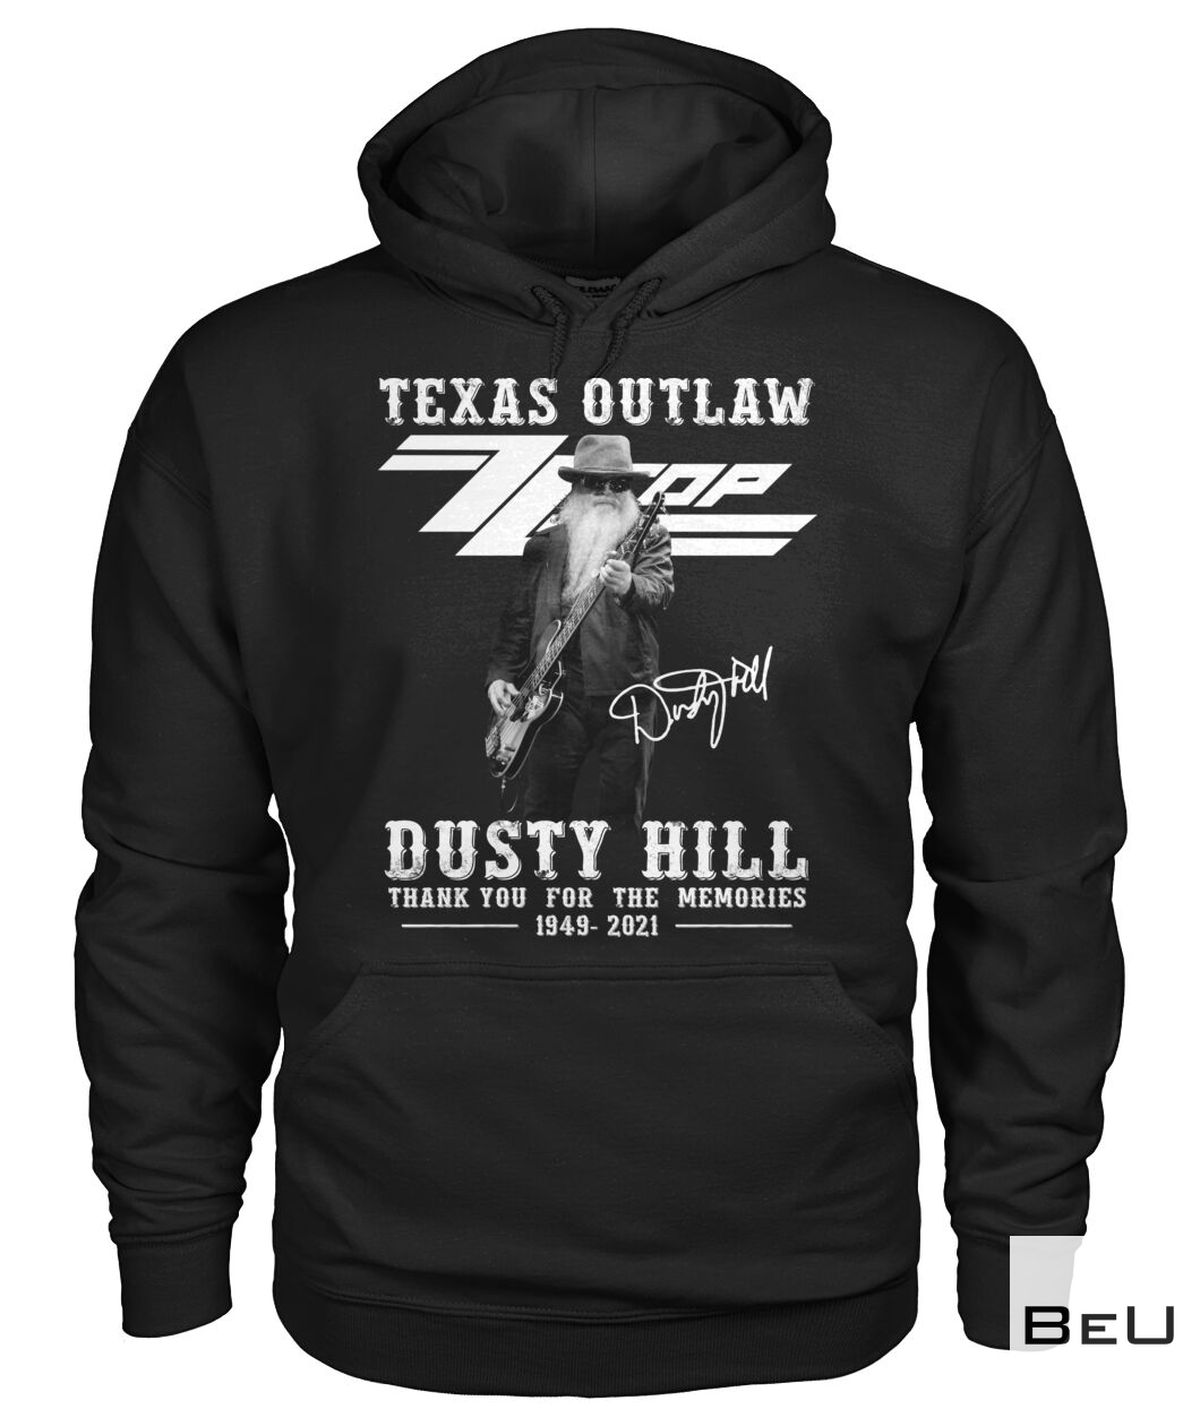 Best Gift Texas Outlaw ZZ Top Dusty Hill Thank You For The Memories Shirt, hoodie